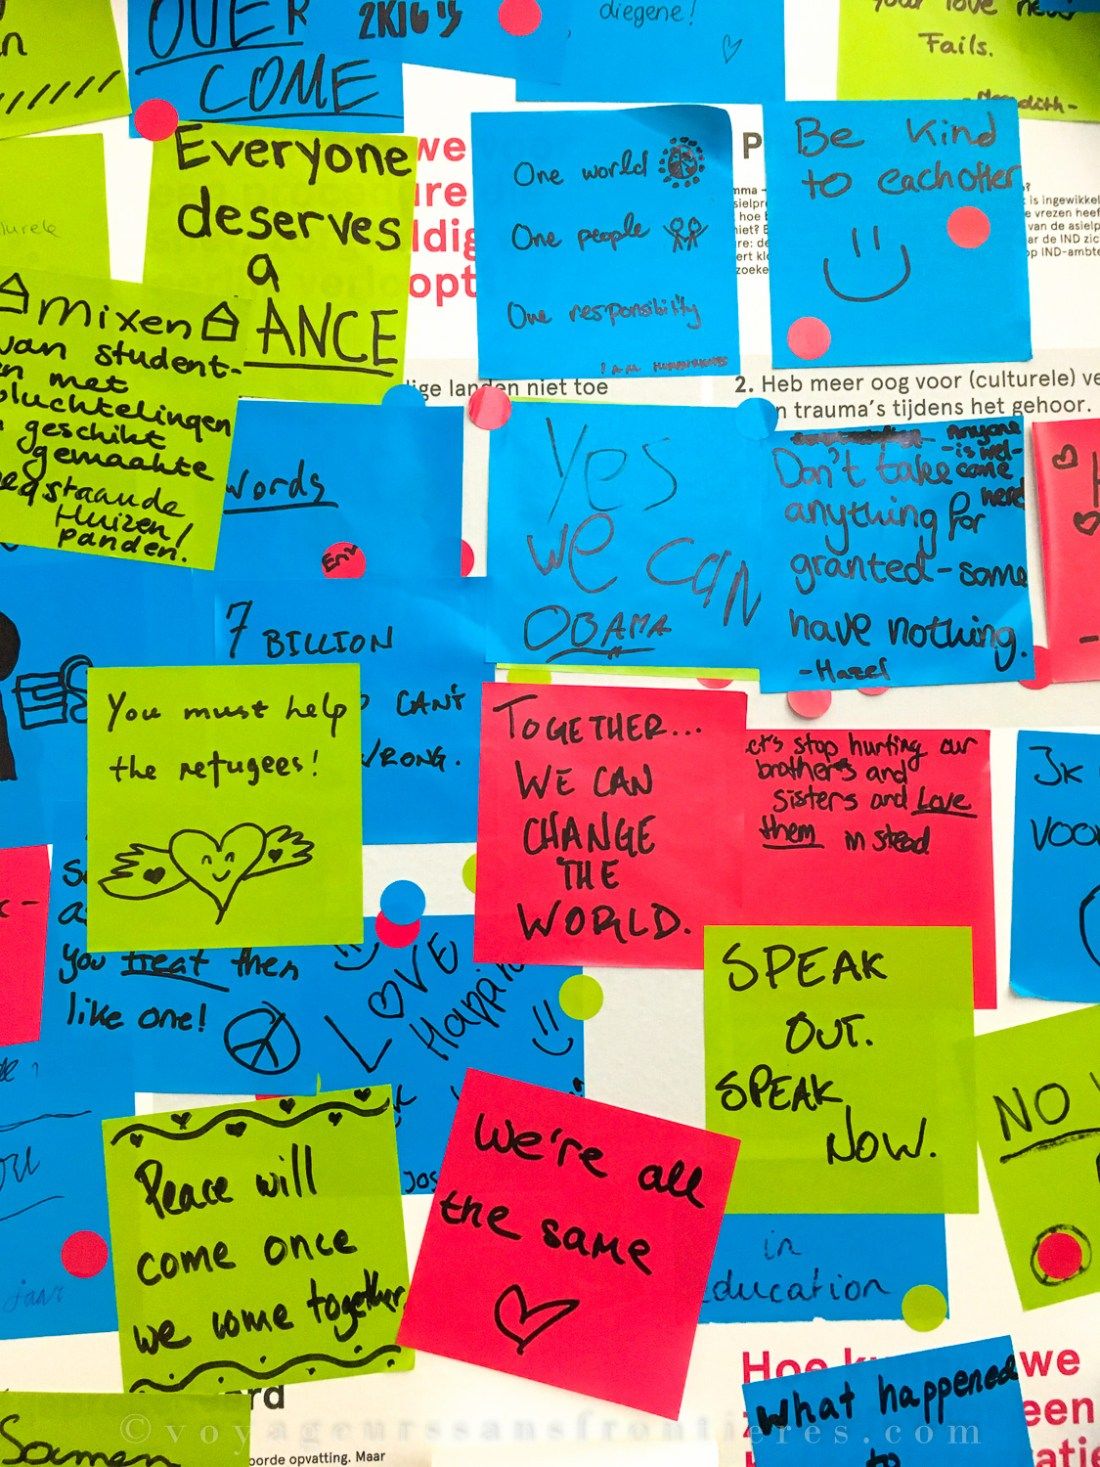 Messages left by the visitors at the Humanity House - The Hague, The Netherlands